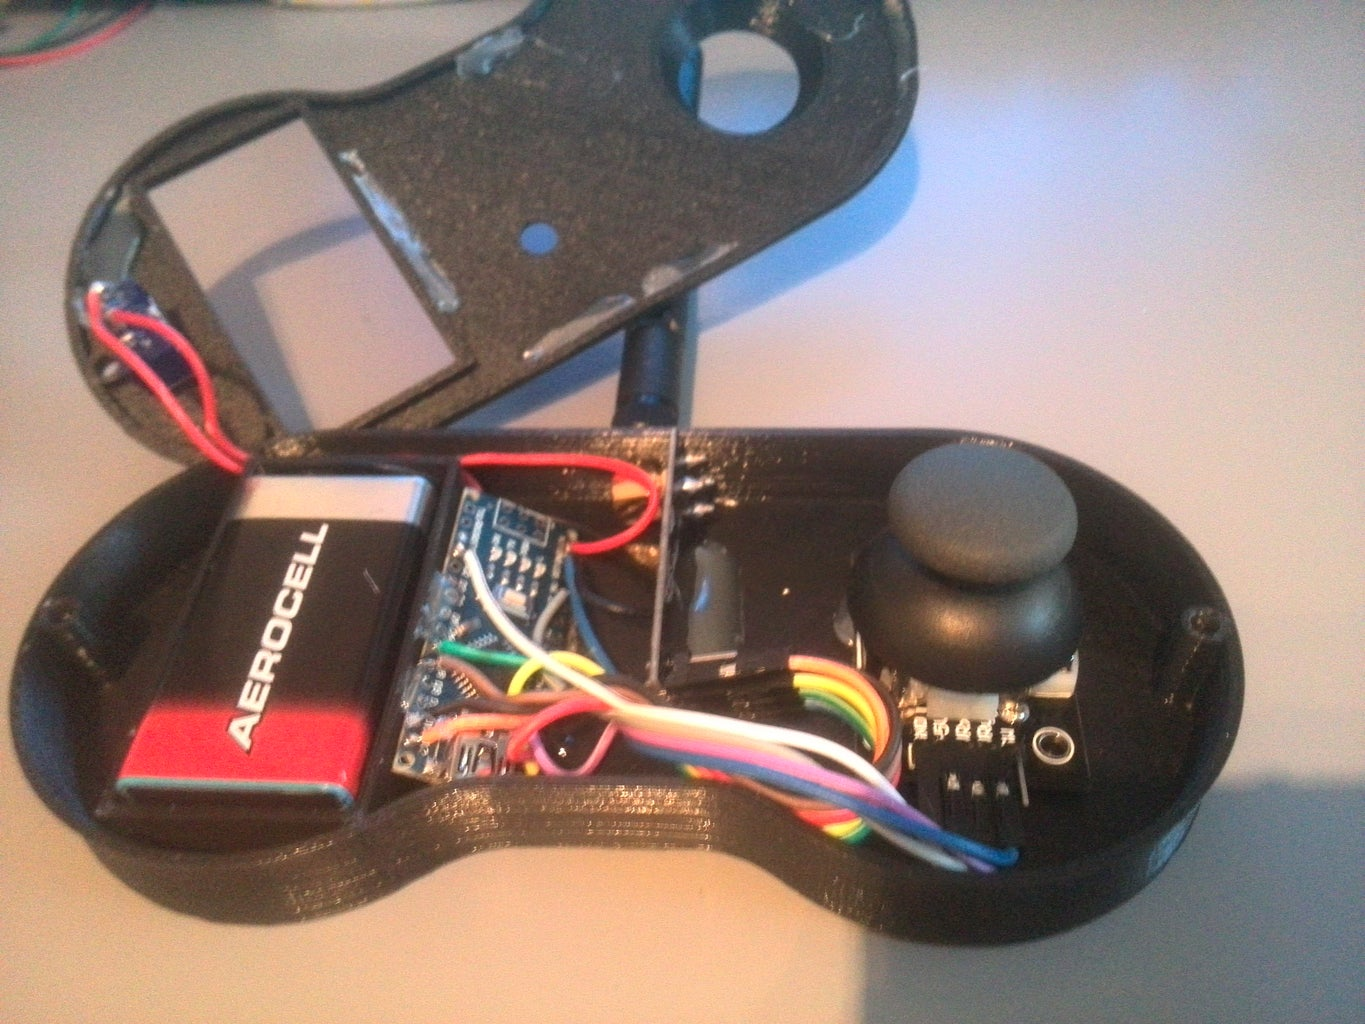 Wiring the Controller